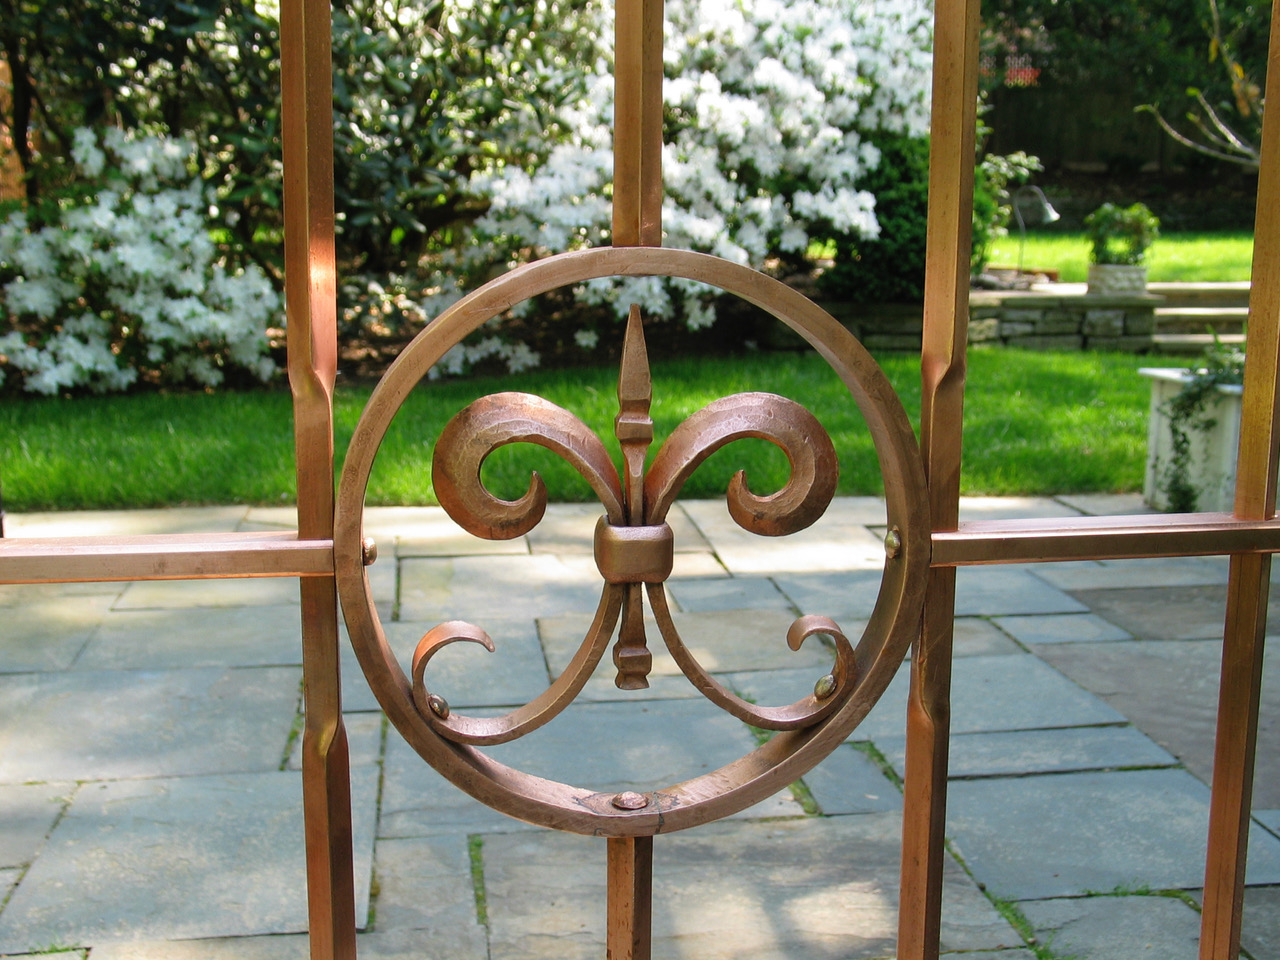 1. Copper Gate Detail